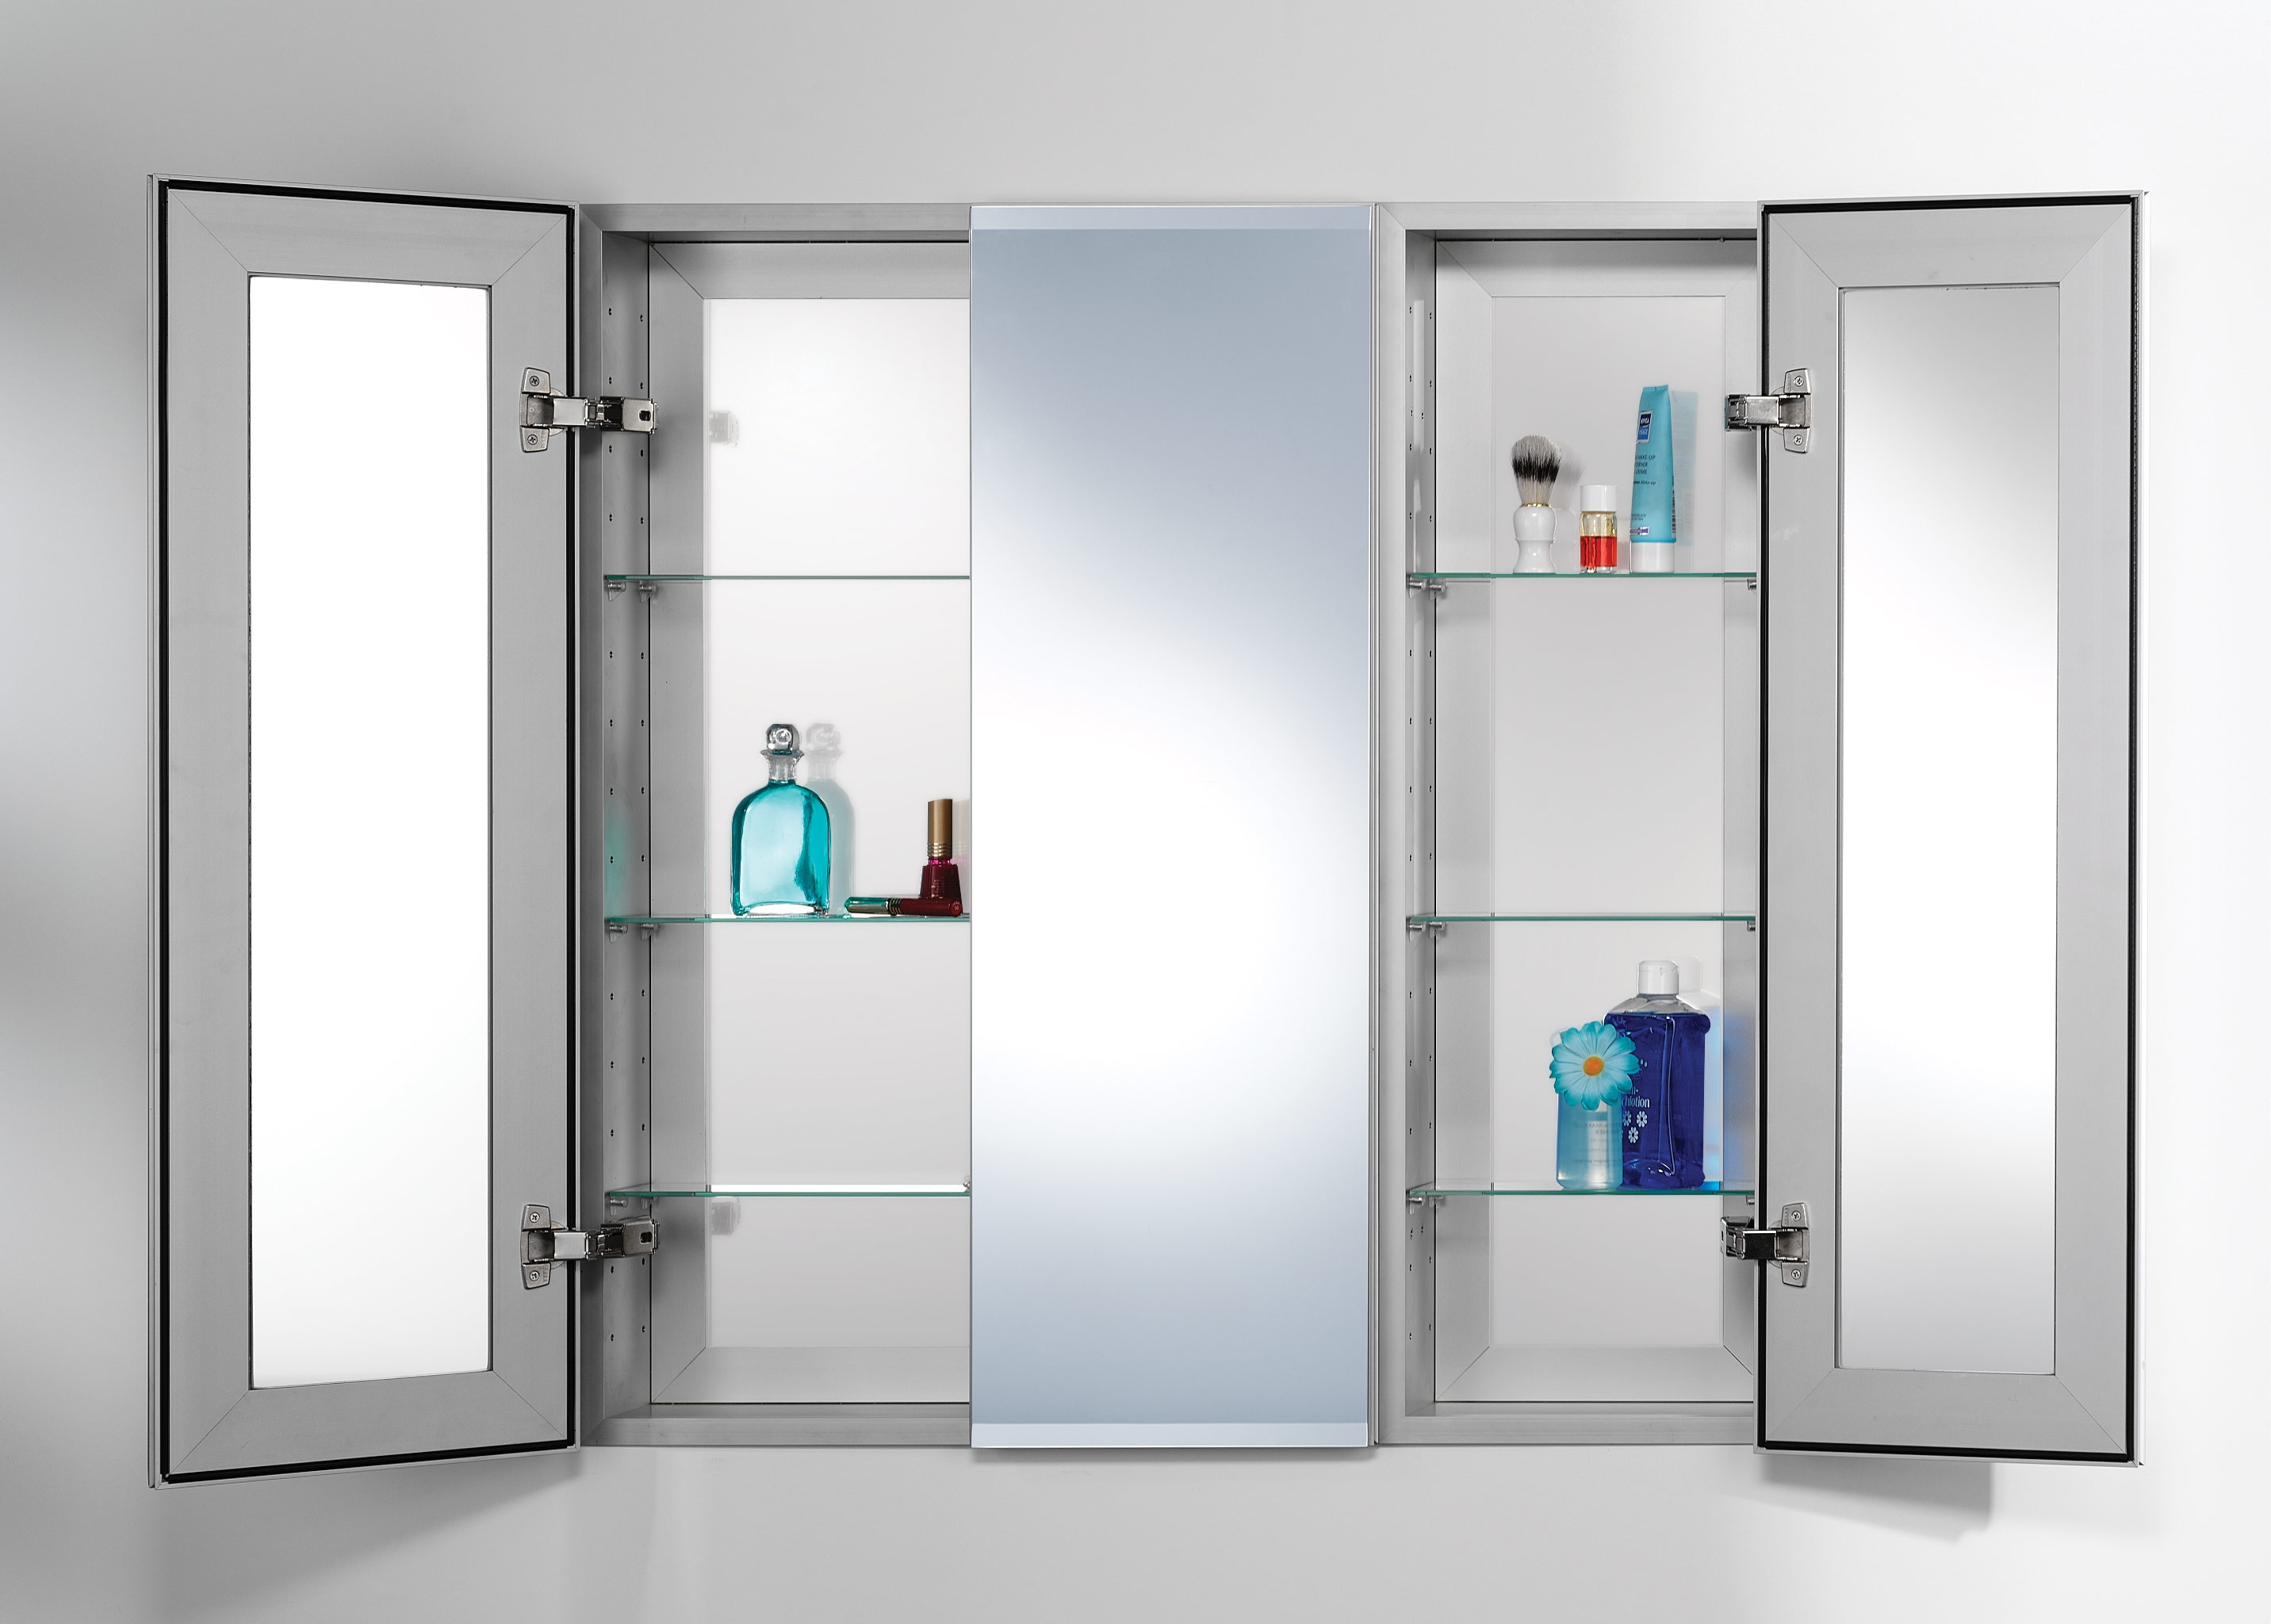 Modern Mirrored Bathroom Cabinet With 3 Shelves